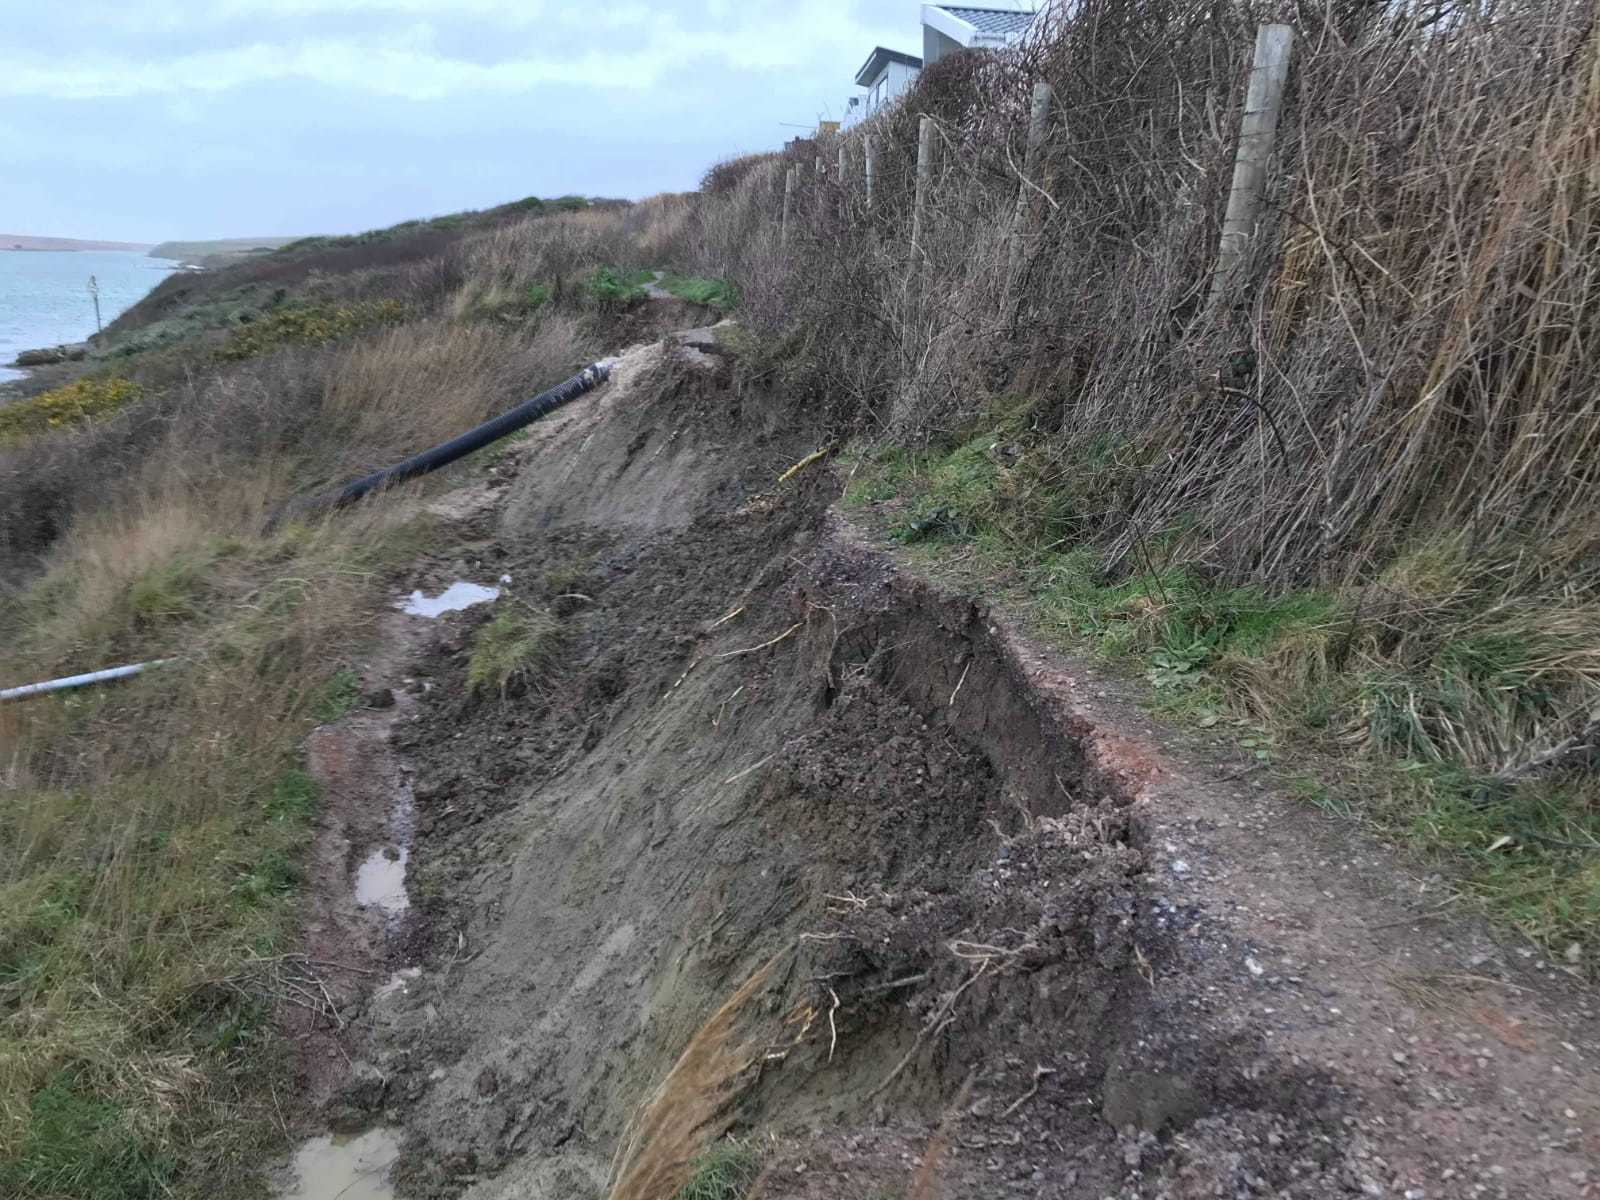 Coast path may never reopen due to 'significant erosion' and safety fears